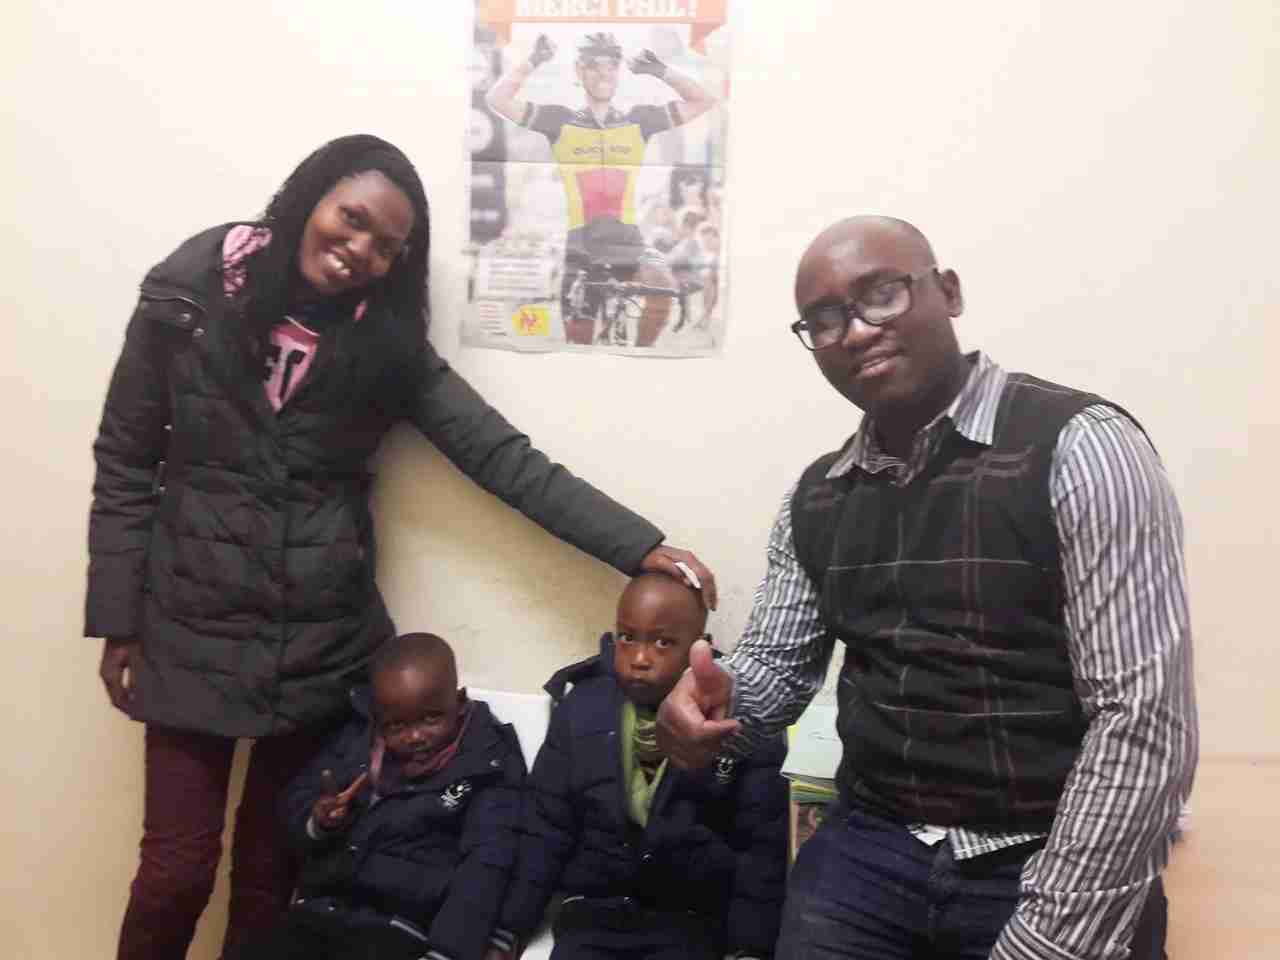 Janvier, who fled Burundi after war broke out, was reunited with his wife and 2 children, who were 3 years and 5 months old at that time they were separated.